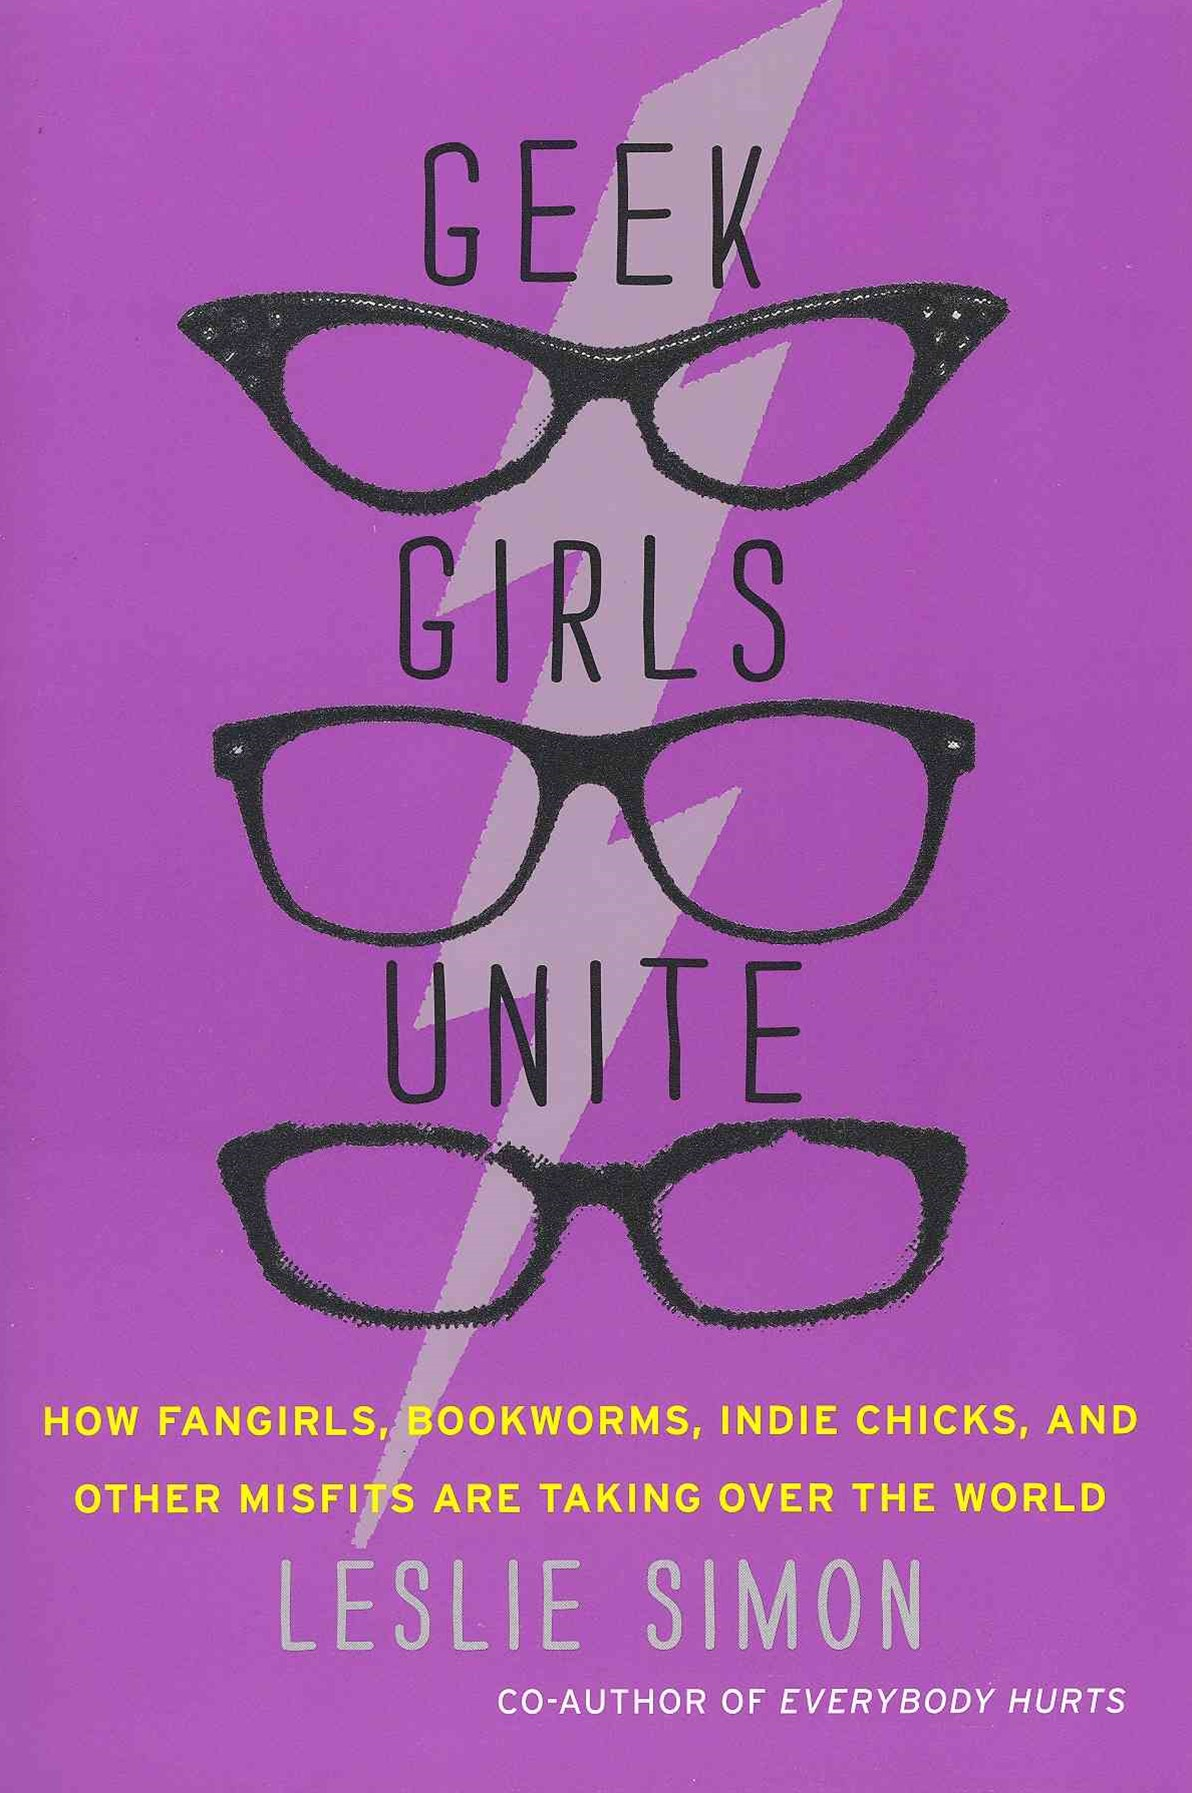 Geek Girls Unite: How Fangirls, Bookworms, Indie Chicks, and Other Misfits are Taking Over the Worl